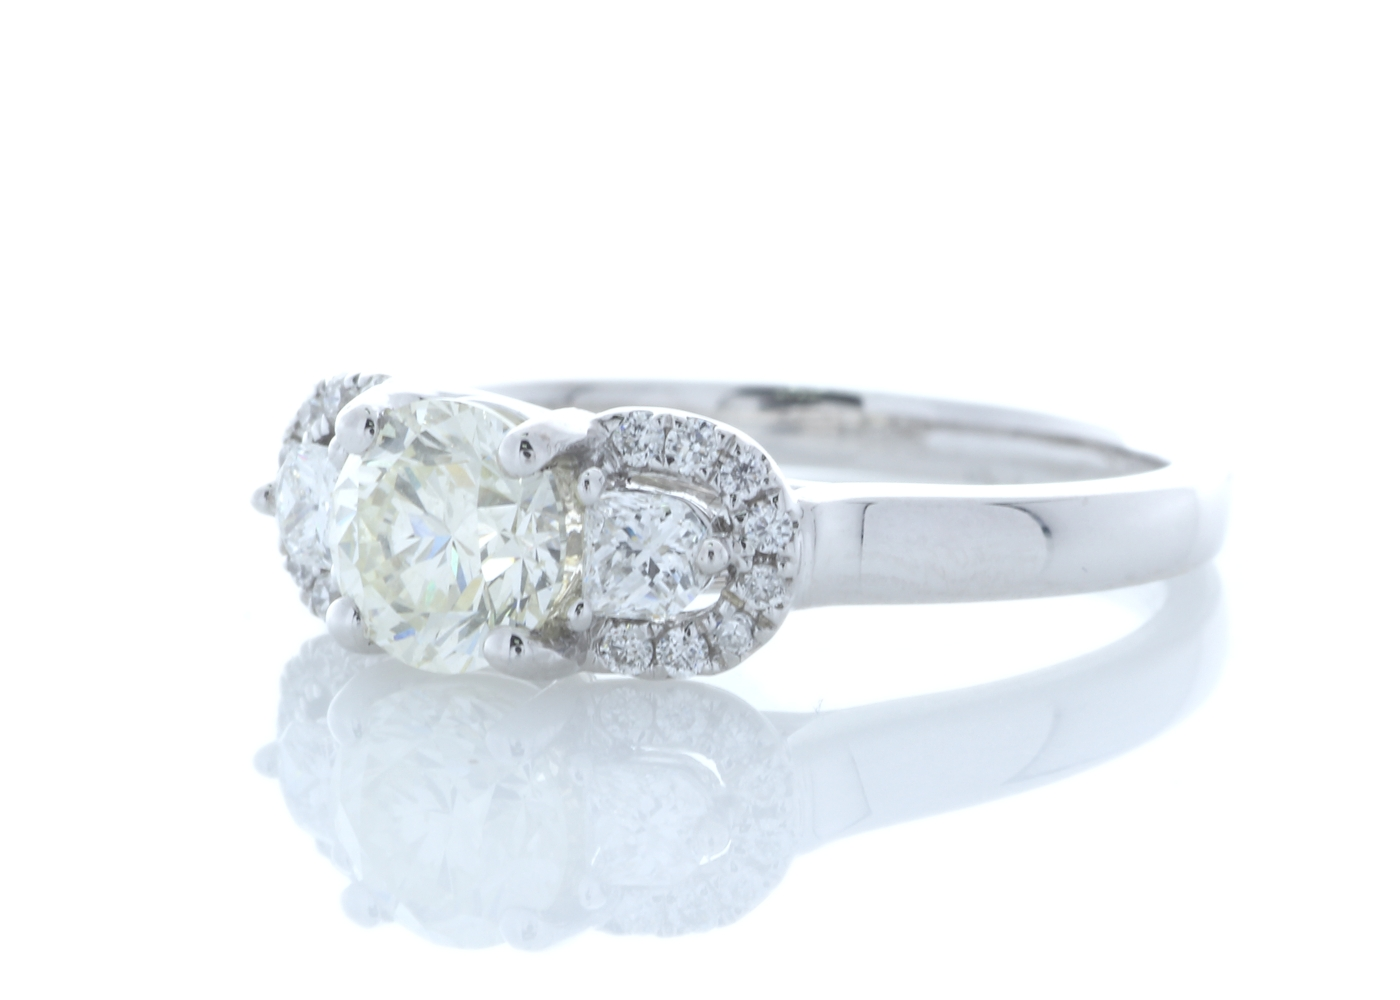 Lot 37 - 18ct White Gold Three Stone Claw Set Diamond Ring 1.02 Carats